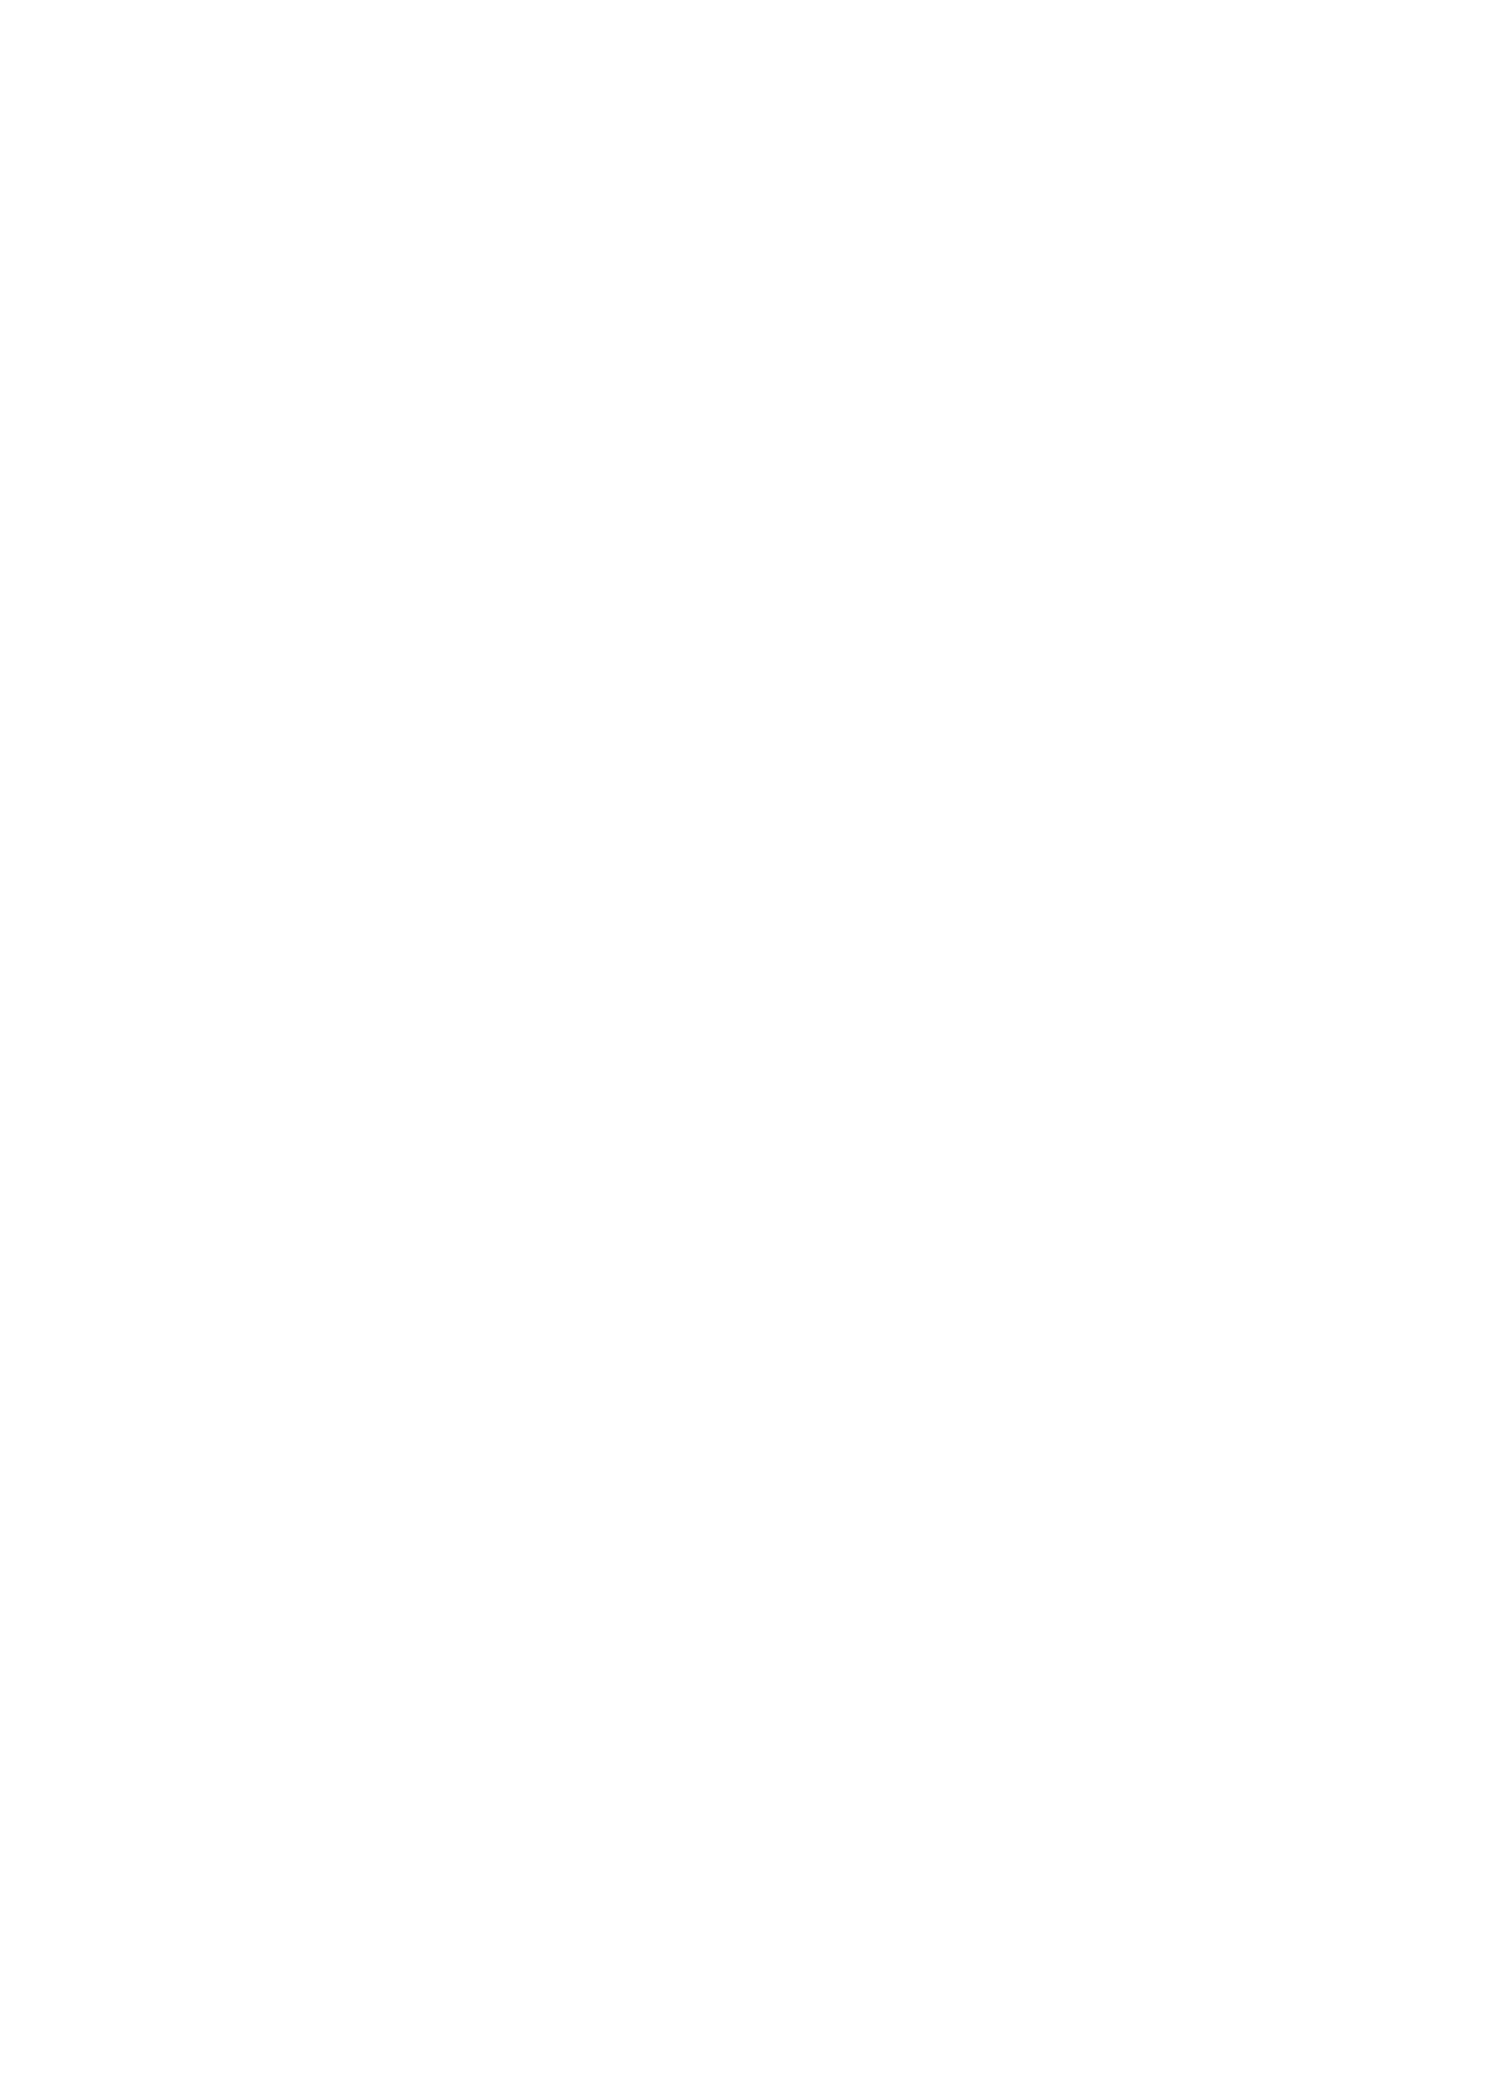 Wind and Gold Photography